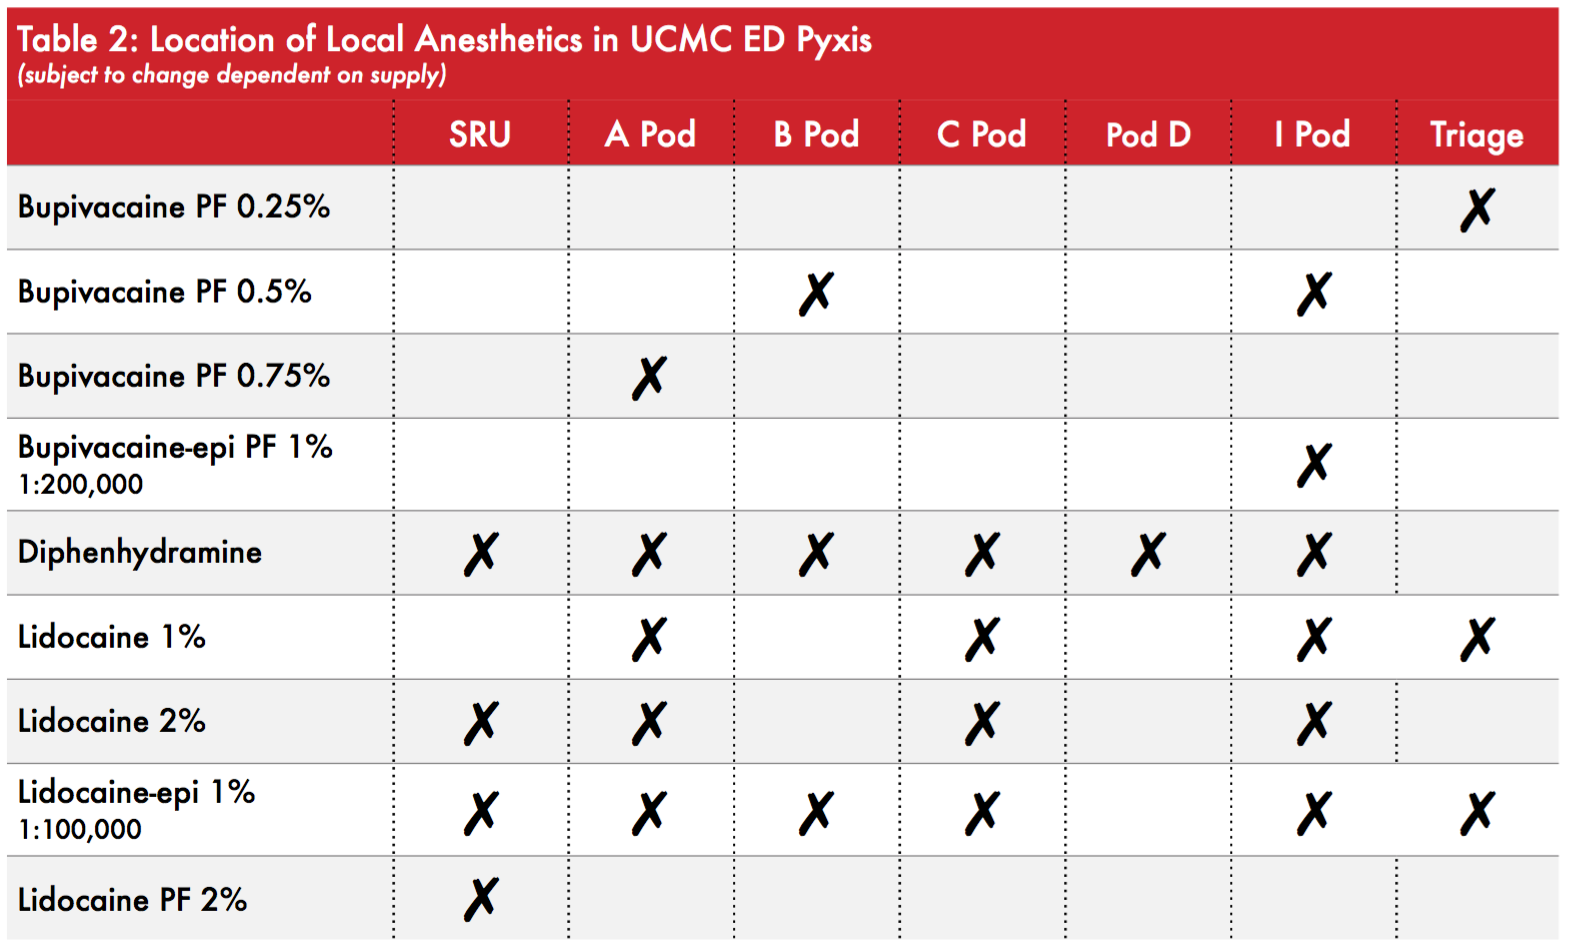 Location of Commonly USeD Anesthetics at UCMC  - Courtesy of UCMC ED pharmacy. Written by: Brittany Slocum, PharmD. Edited by: Jessie Winter, PharmD, BCPS